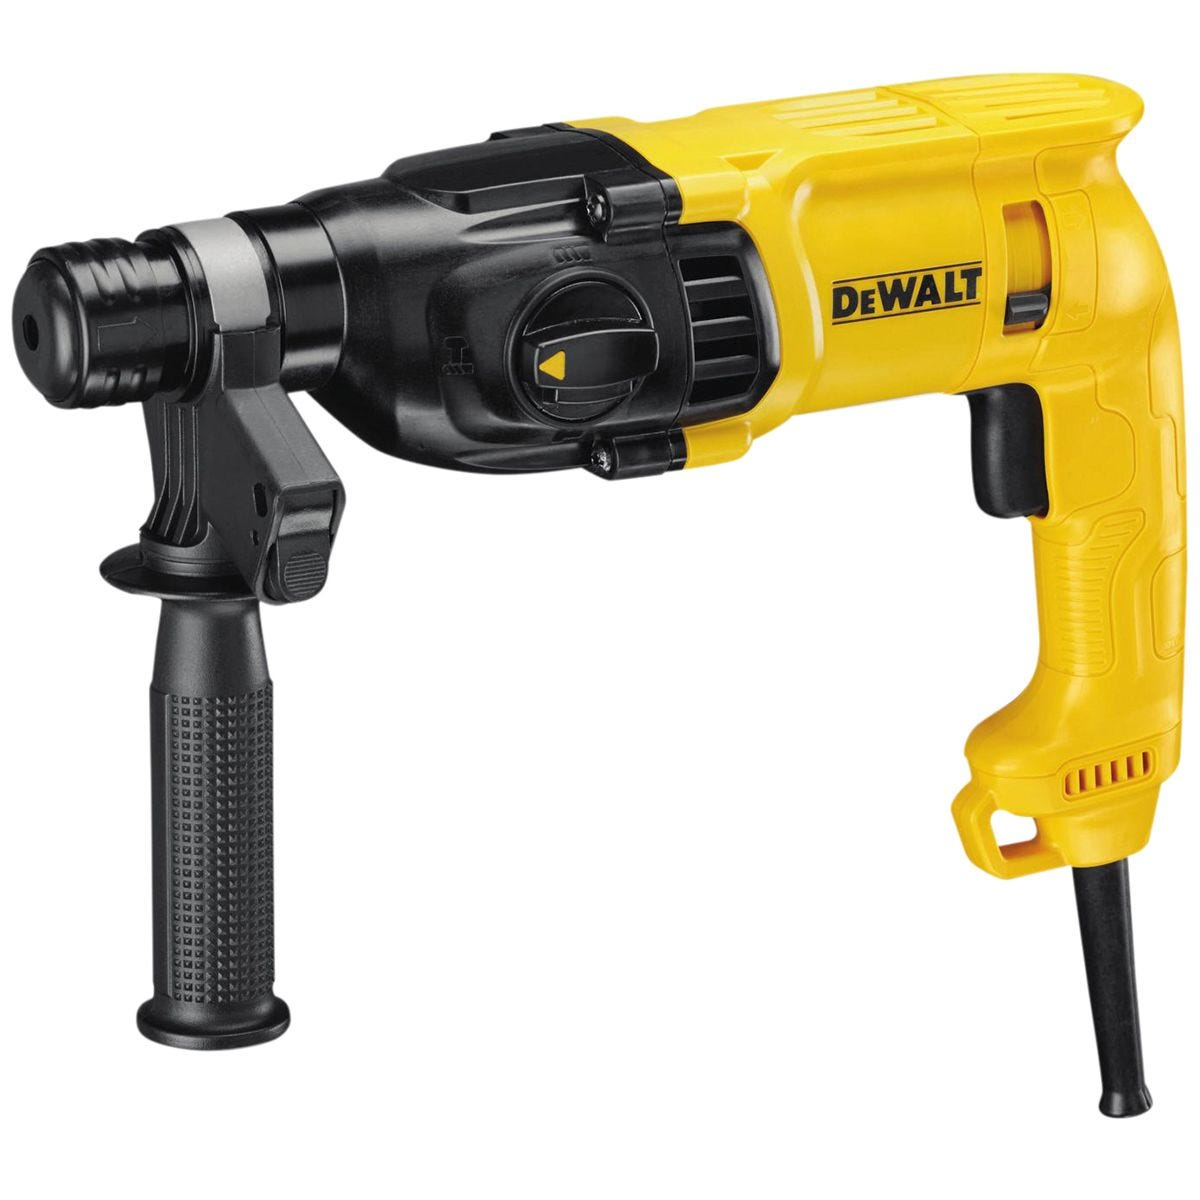 Dewalt D25033K SDS Plus 3-Mode Hammer Drill 710W 240V